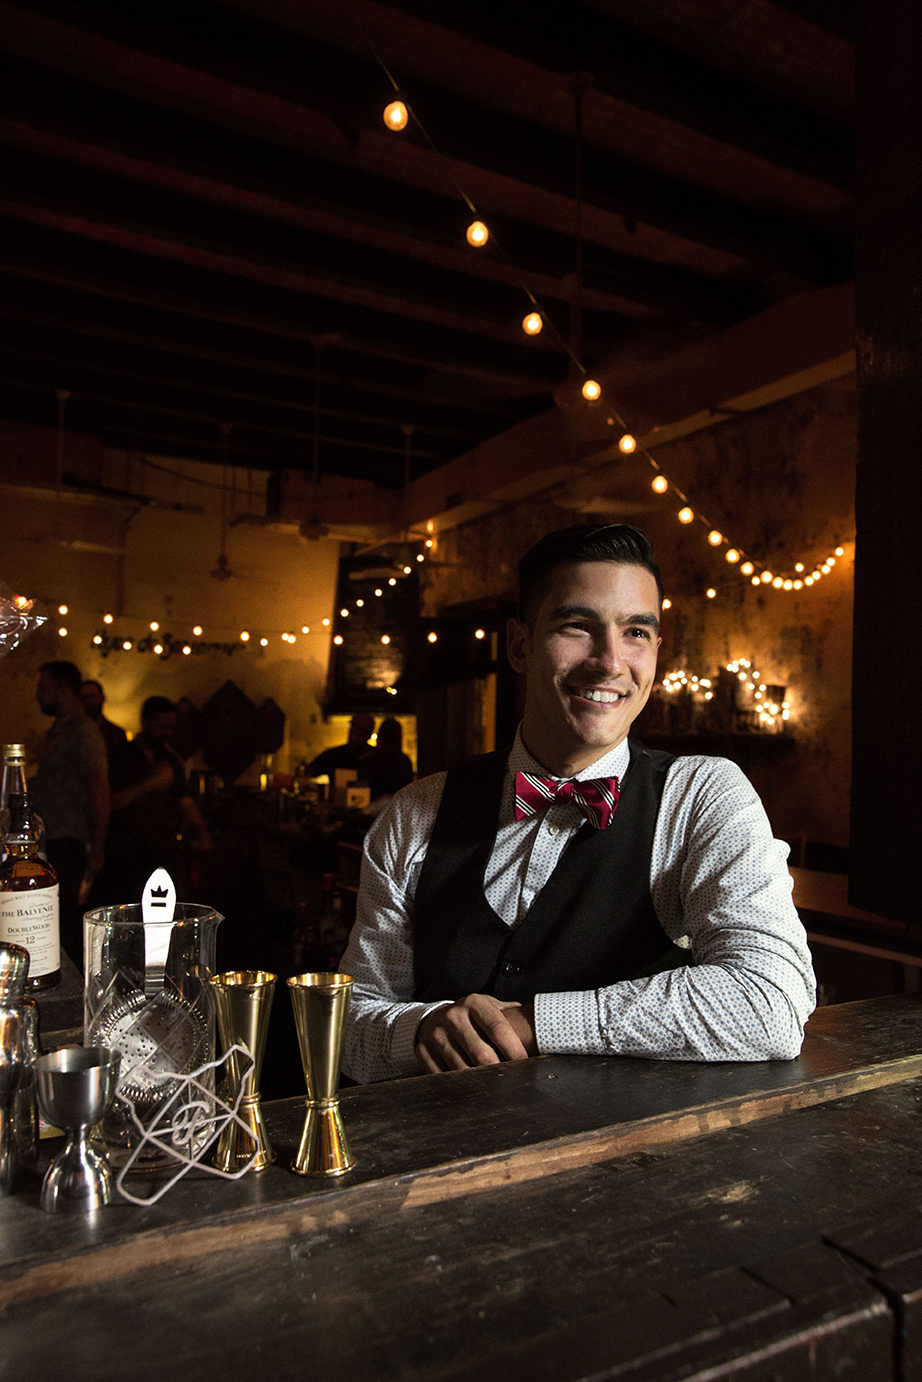 Roberto Berdecia from La Factoria in Old San Juan was named Bartender of the Year 2017 by the 